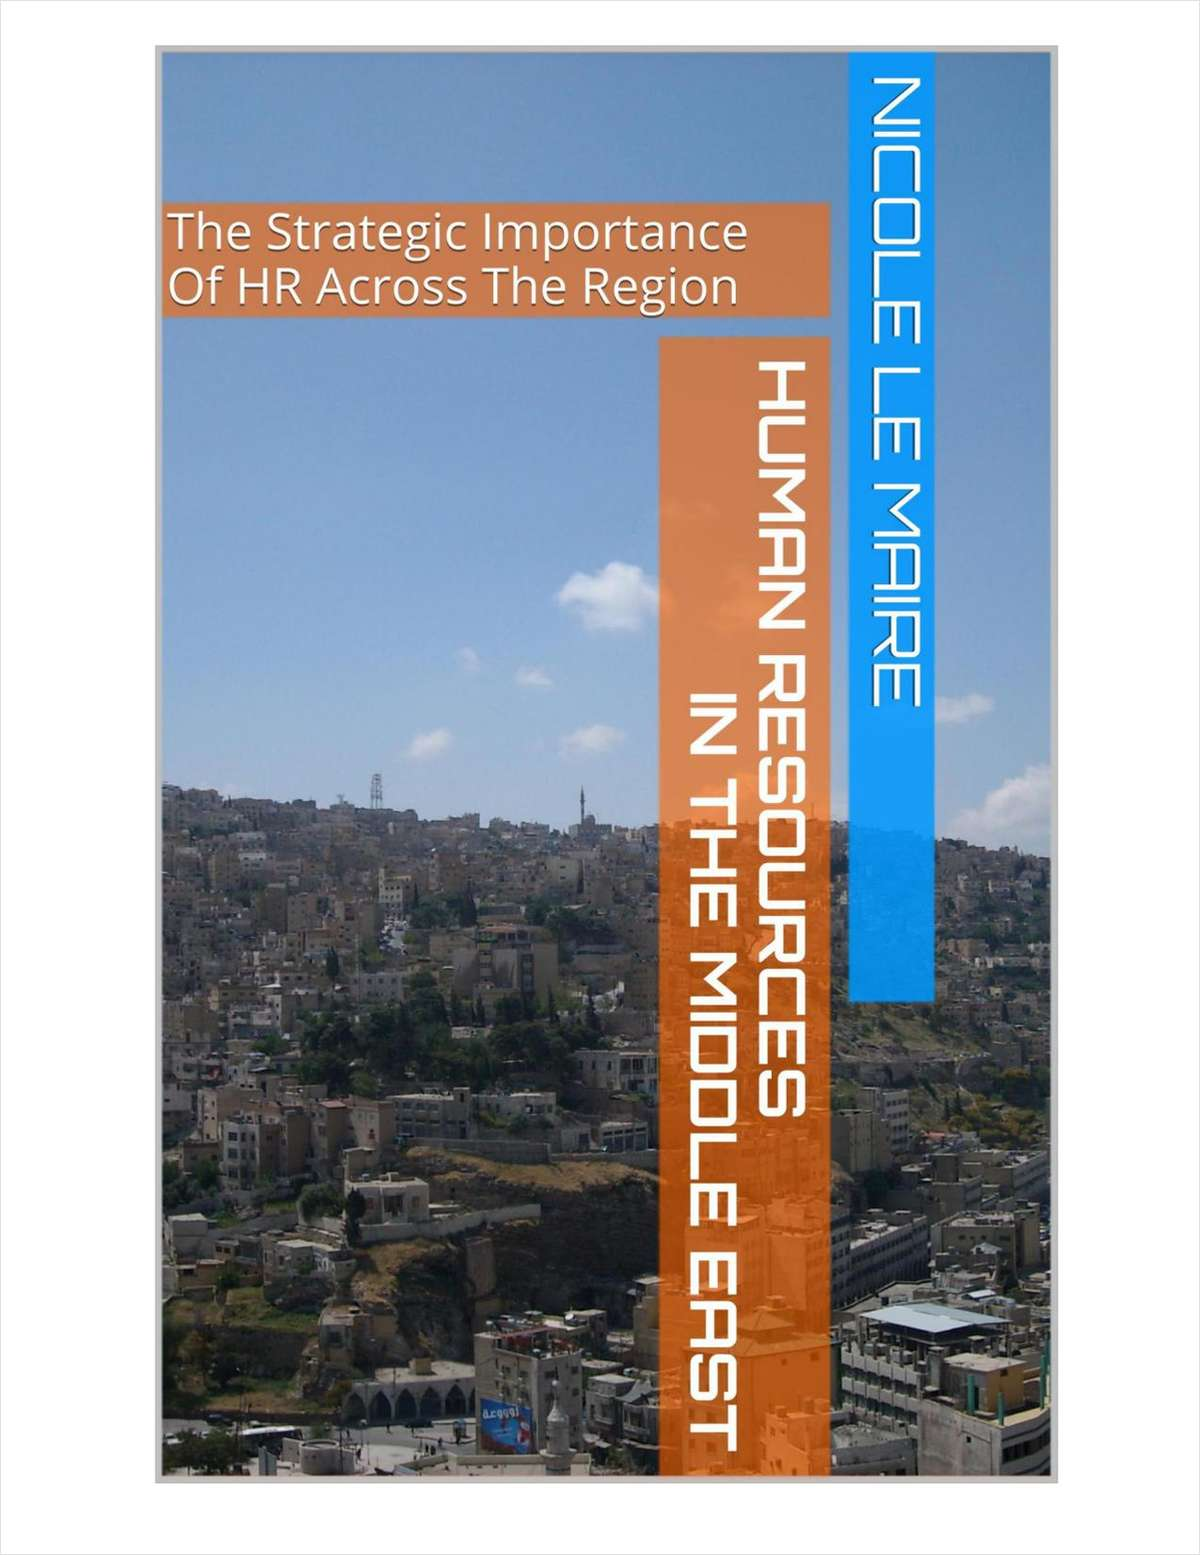 The Strategic Importance of HR Across The Region: Human Resources in the Middle East